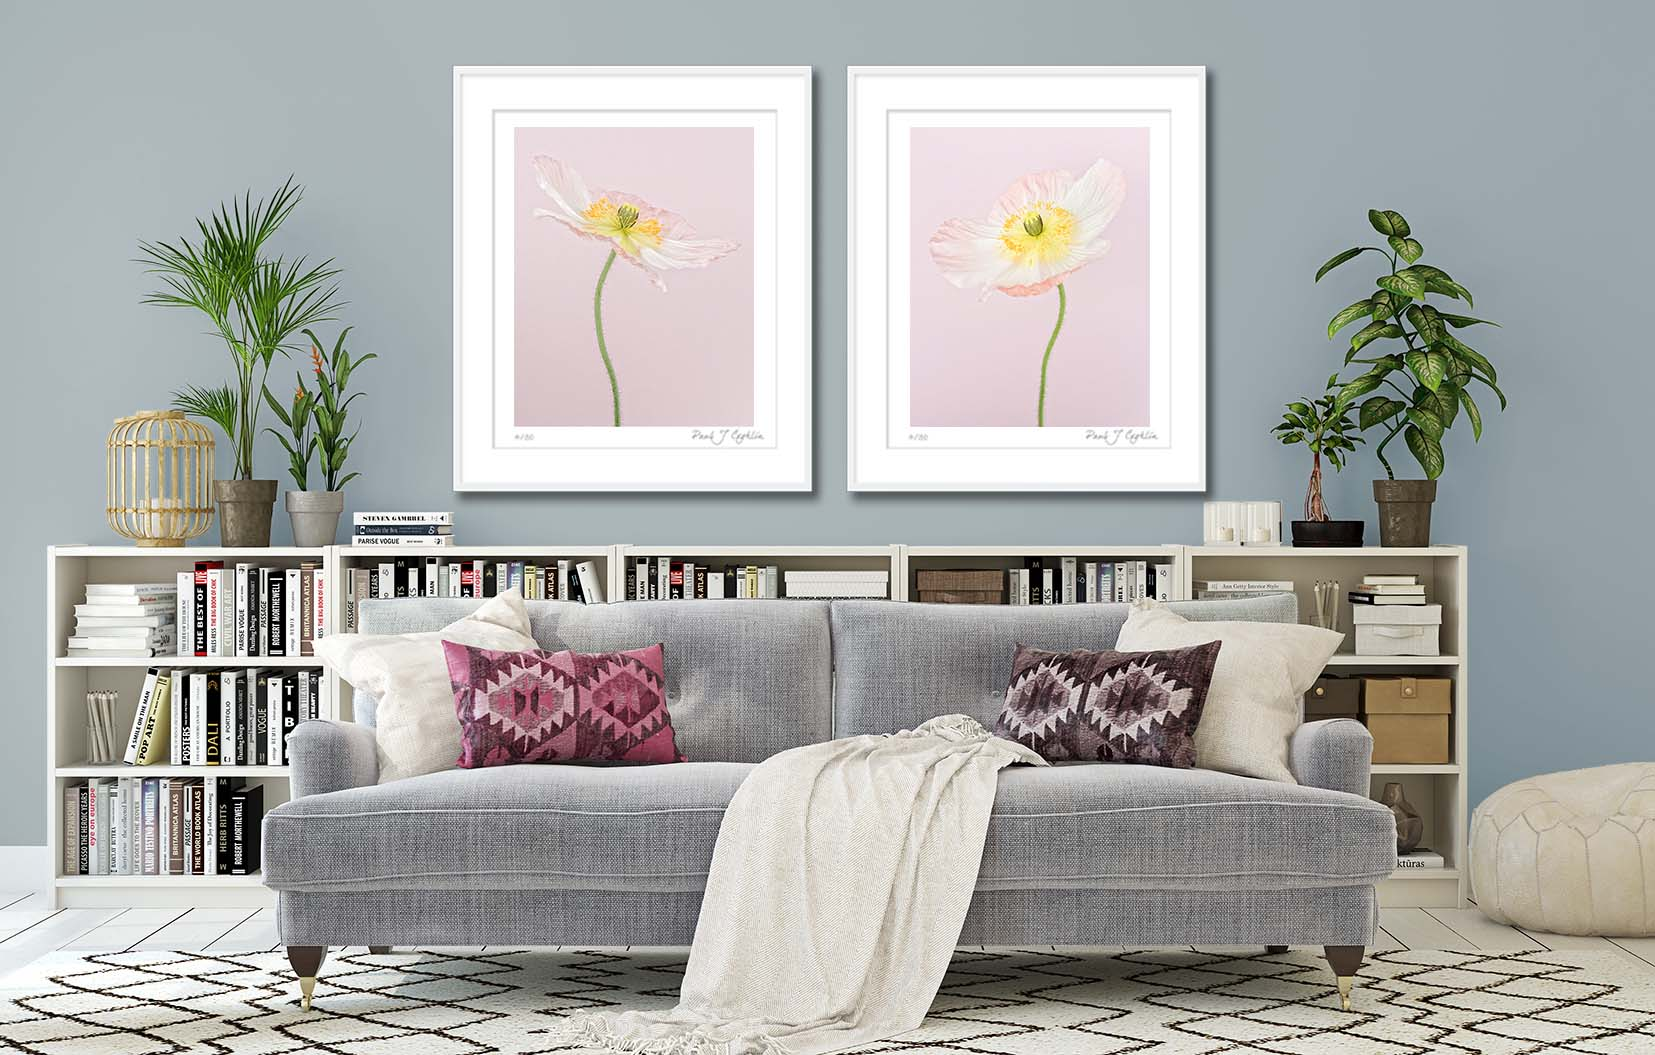 Two Icelandic poppy prints on the wall. Limited edition photographic print of a poppy by fine art photographer Paul Coghlin FBIPP.